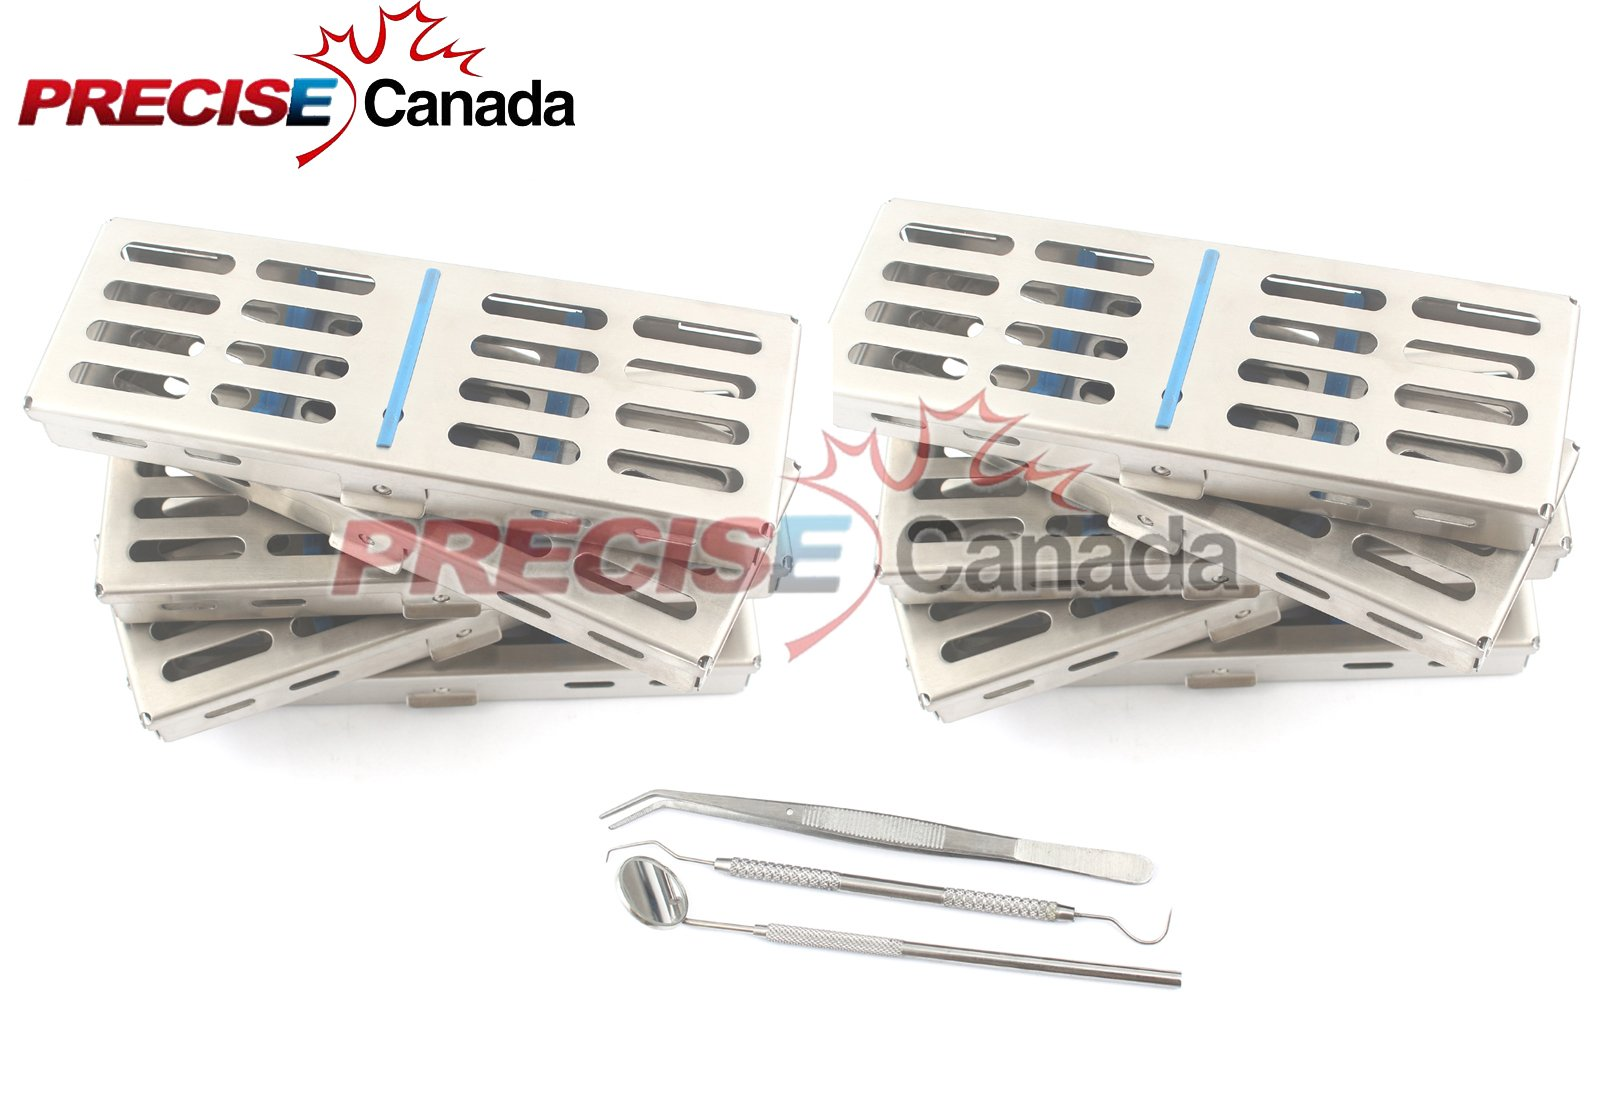 PRECISE CANADA: NEW SET OF 10 EACH GERMAN GRADE DENTAL AUTOCLAVE STERILIZATION CASSETTE RACK BOX TRAY FOR 5 INSTRUMENT+3 PIECE DENTAL SET FREE NEW